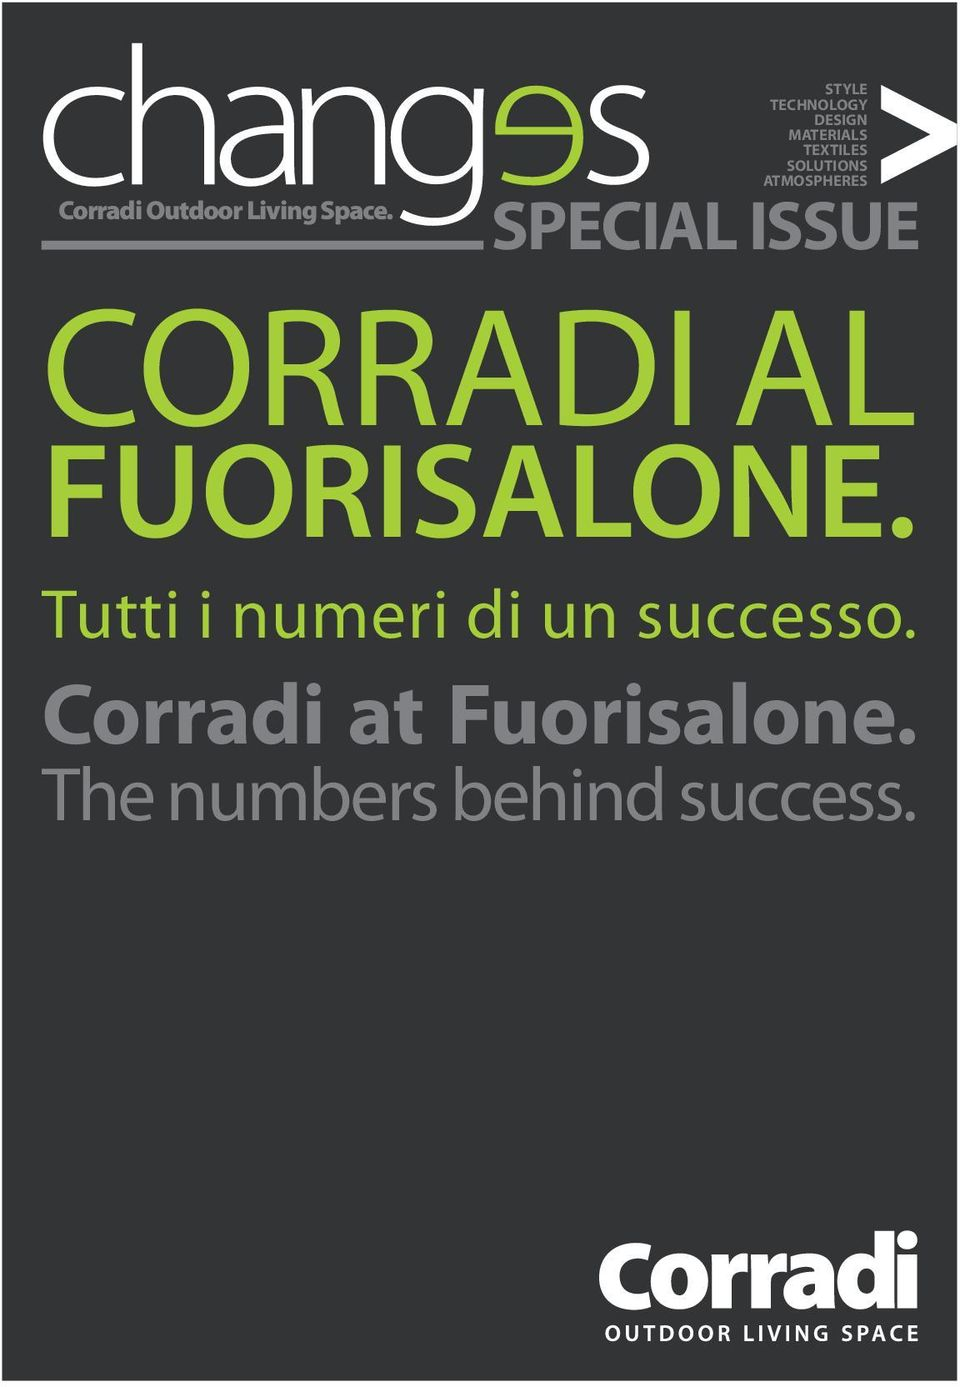 ATMOSPHERES SPECIAL ISSUE CORRADI AL FUORISALONE.